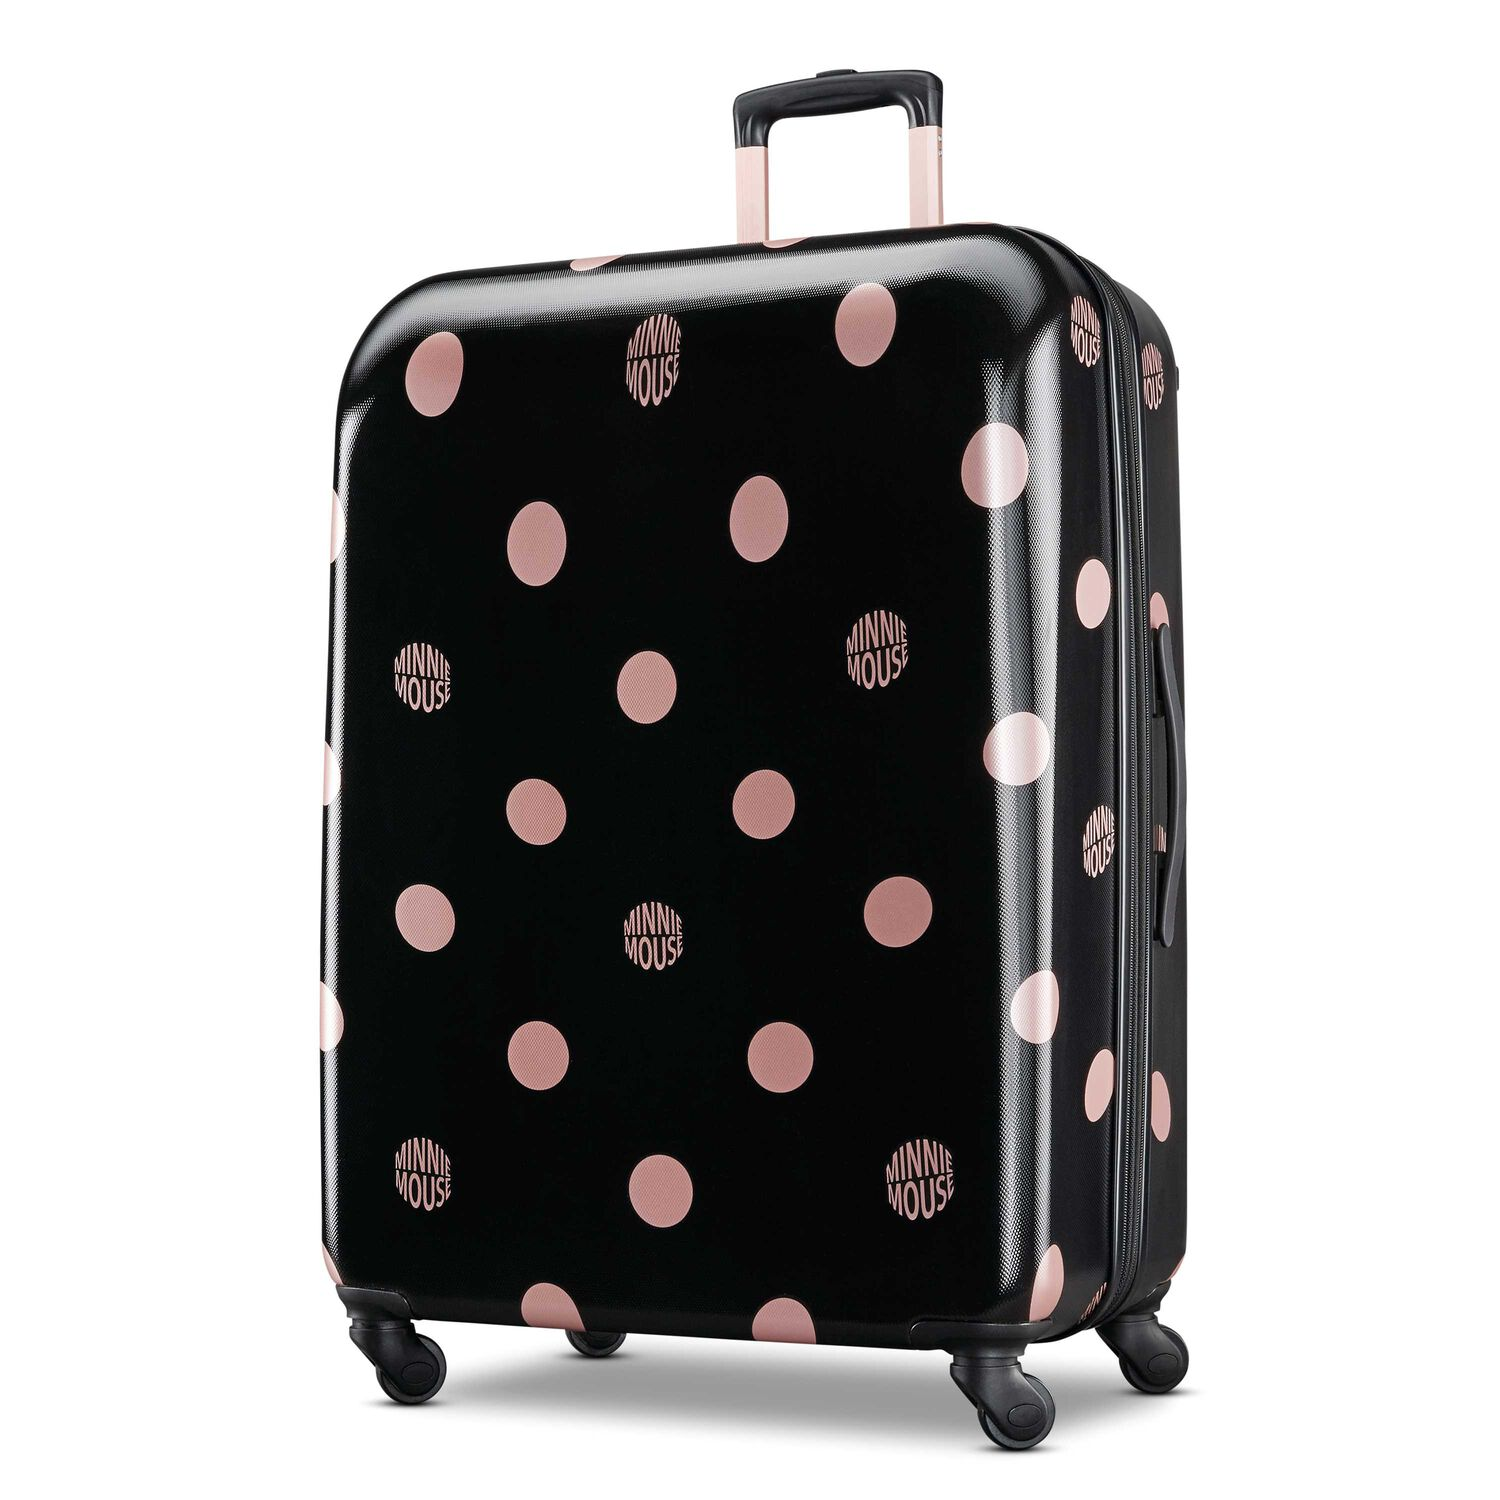 cedffb77d0d0 American Tourister Minnie Mouse Lux Dots Hardside Spinner